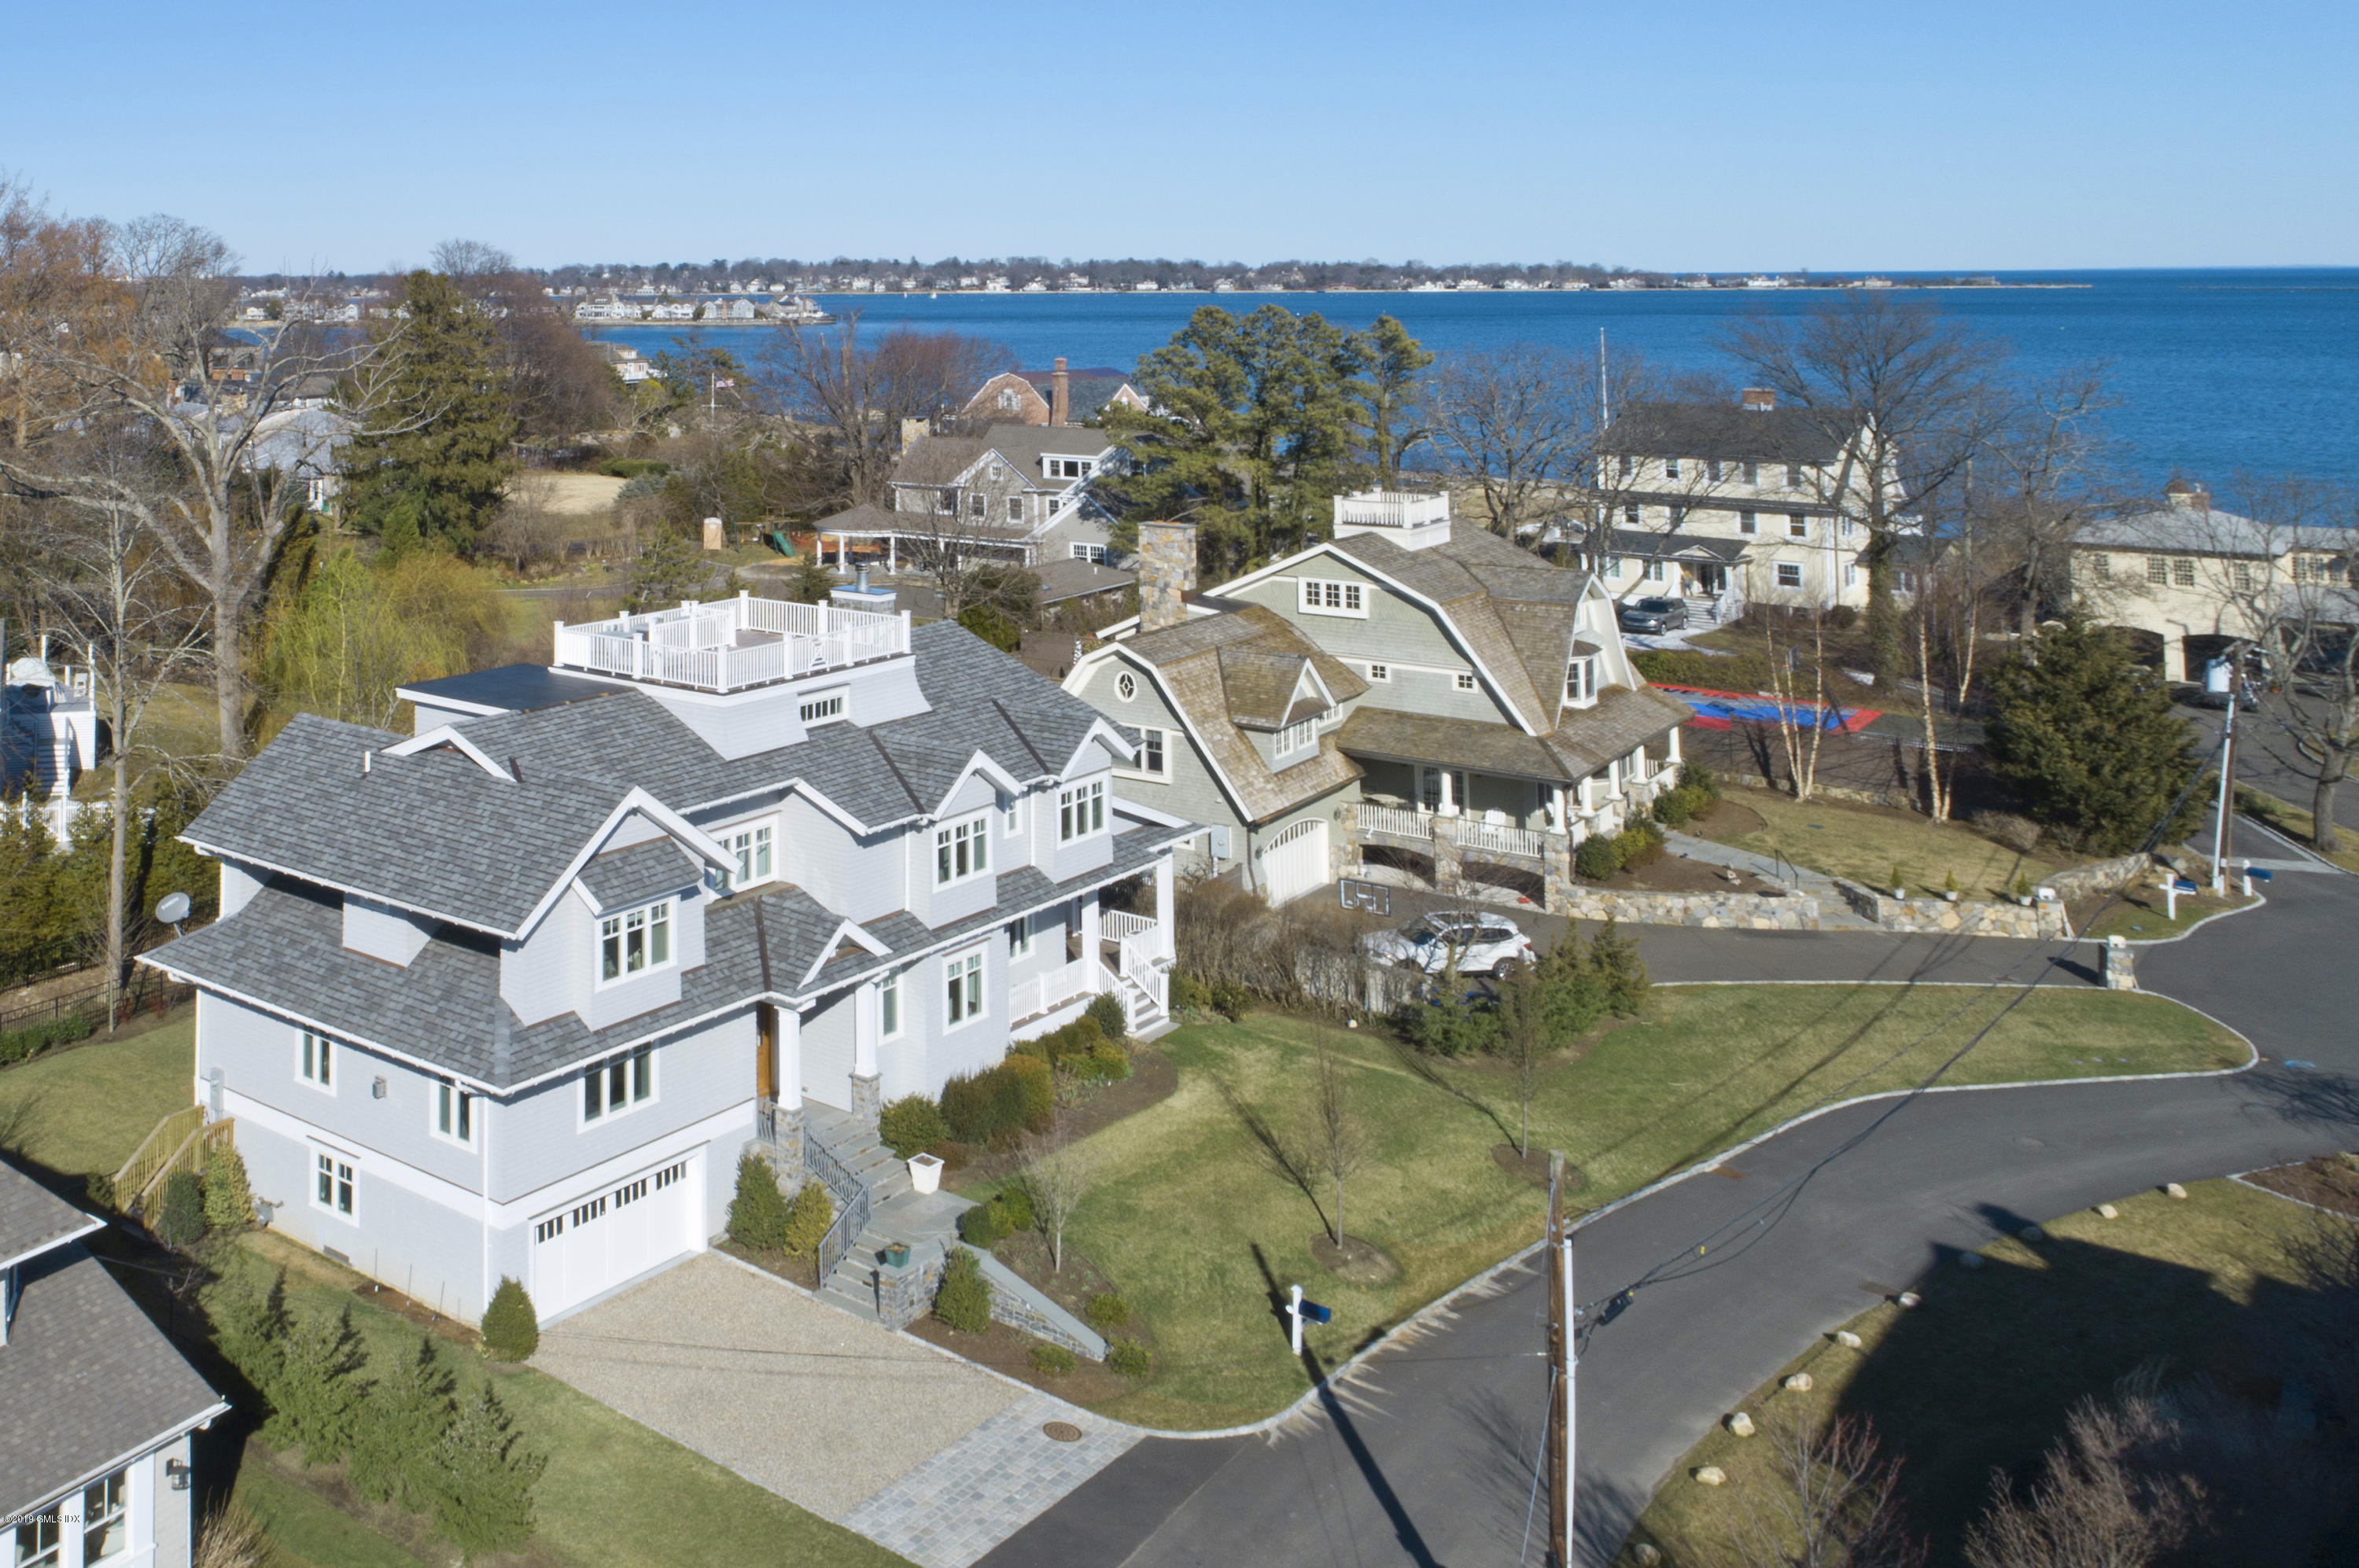 9 Lighthouse Lane,Old Greenwich,Connecticut 06870,5 Bedrooms Bedrooms,5 BathroomsBathrooms,Single family,Lighthouse,105937